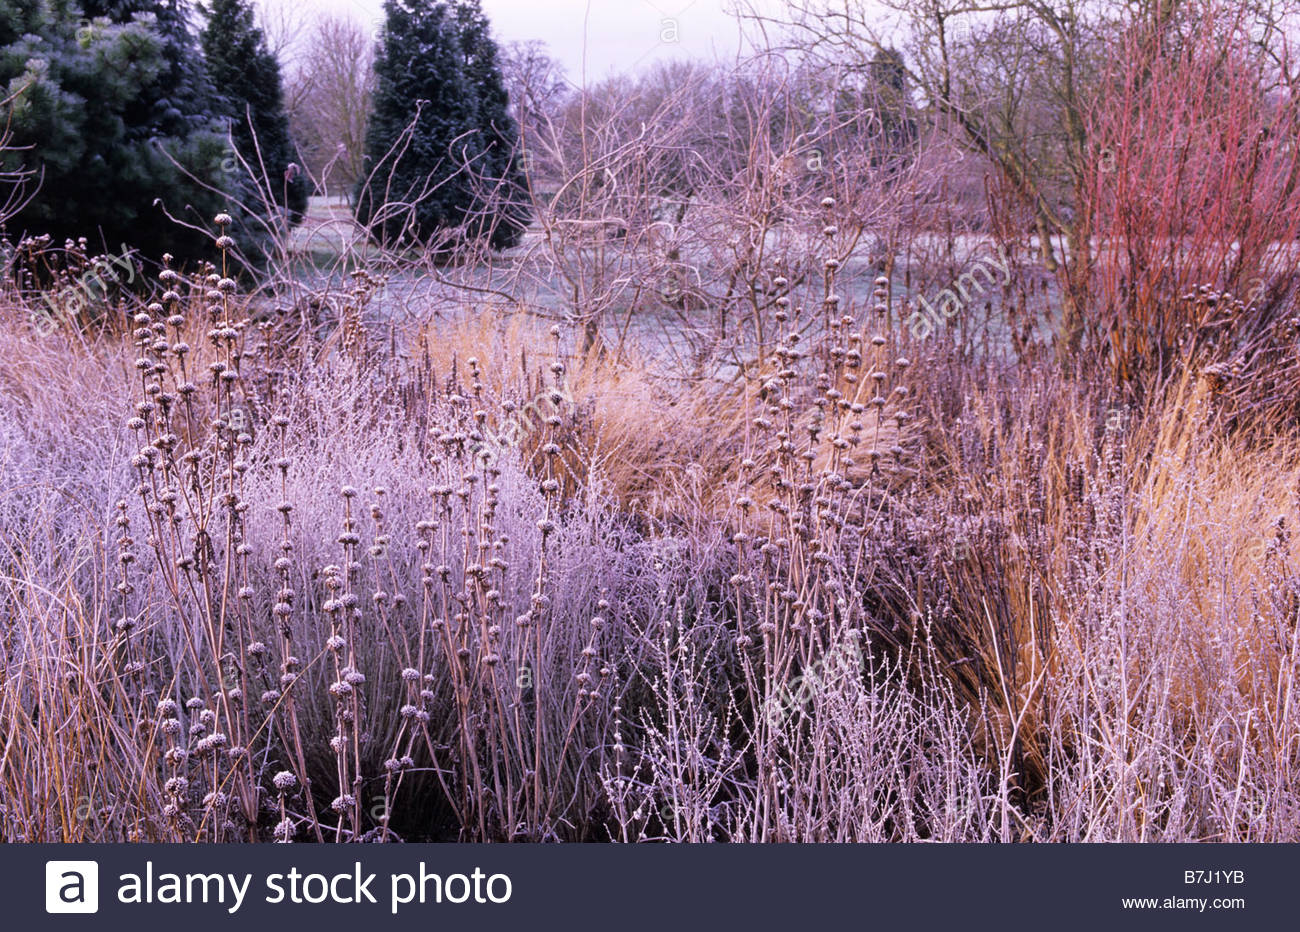 Piet oudolf borders at wisley stock photo royalty free for Piet oudolf fall winter spring summer fall